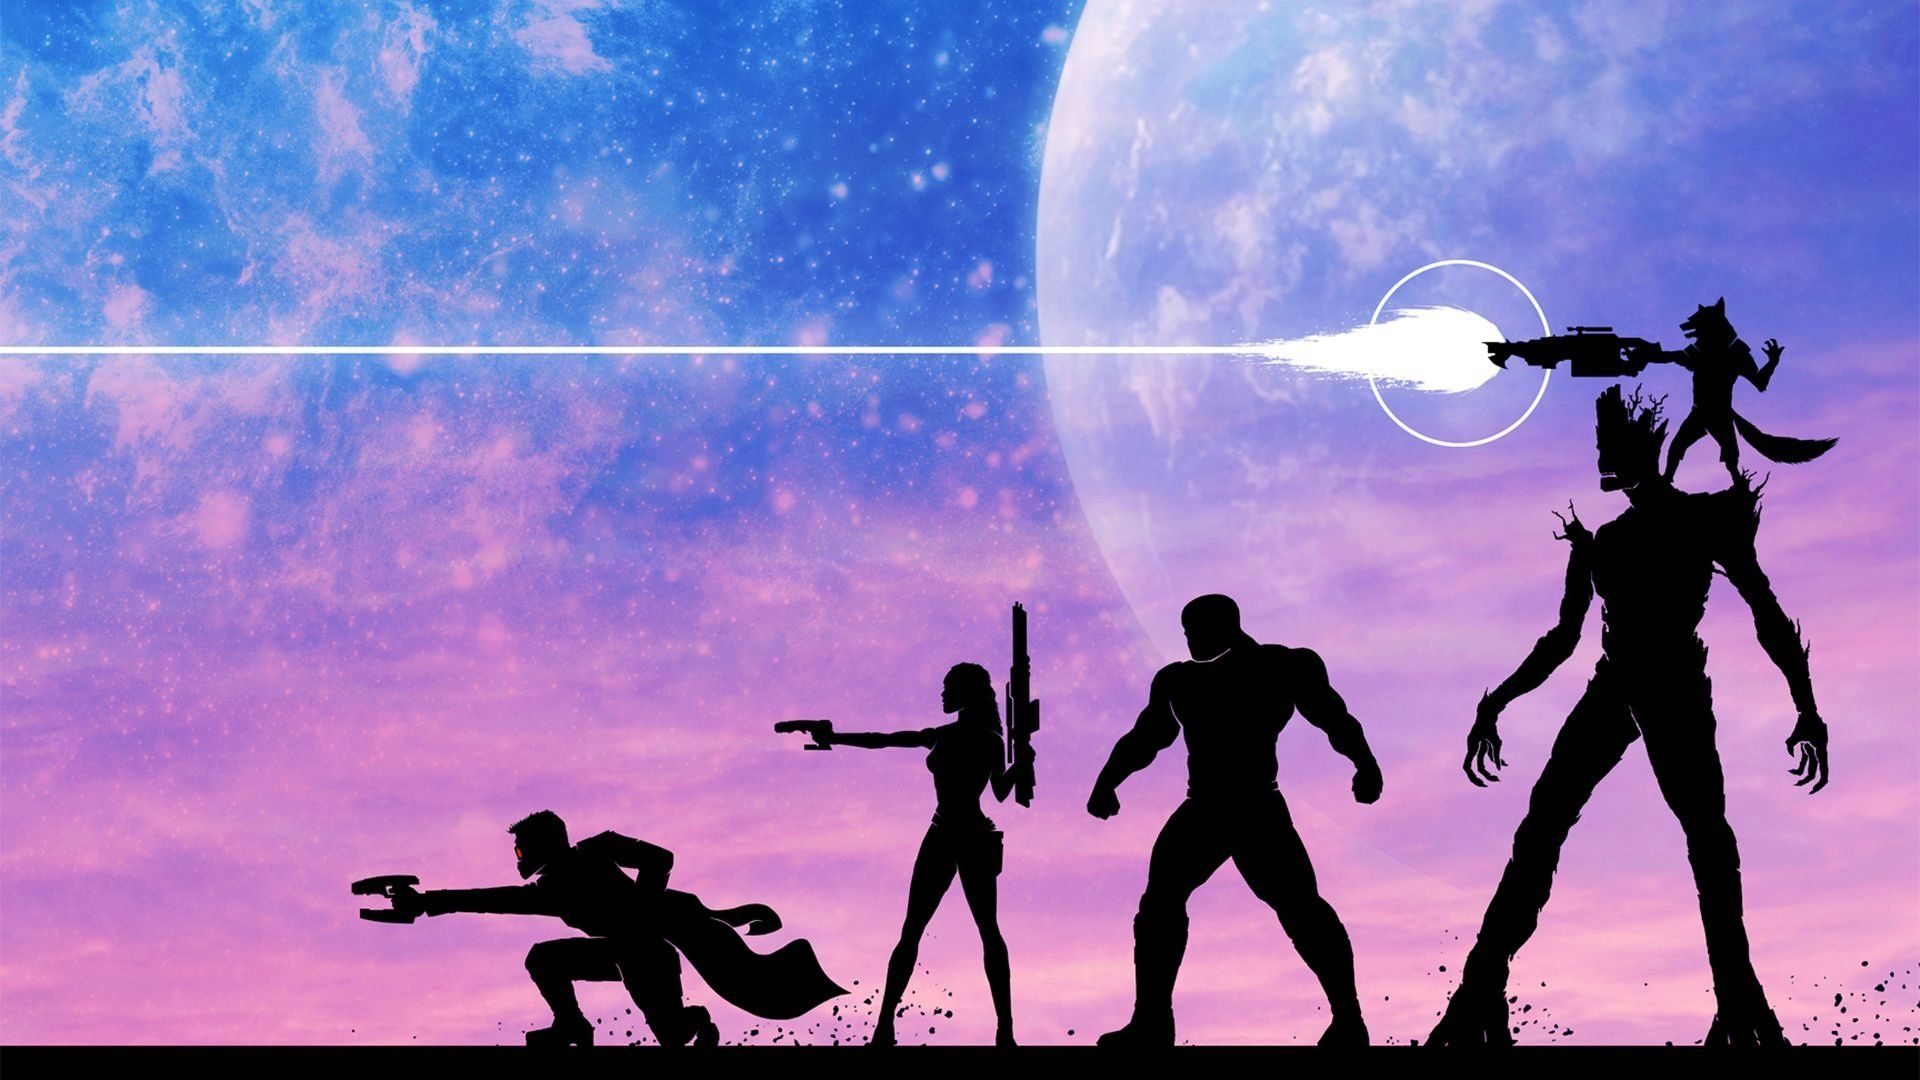 61 Guardians Of The Galaxy Hd Wallpapers Backgrounds Wallpaper Galaxy Movie Guardians Of The Galaxy Avengers Wallpaper